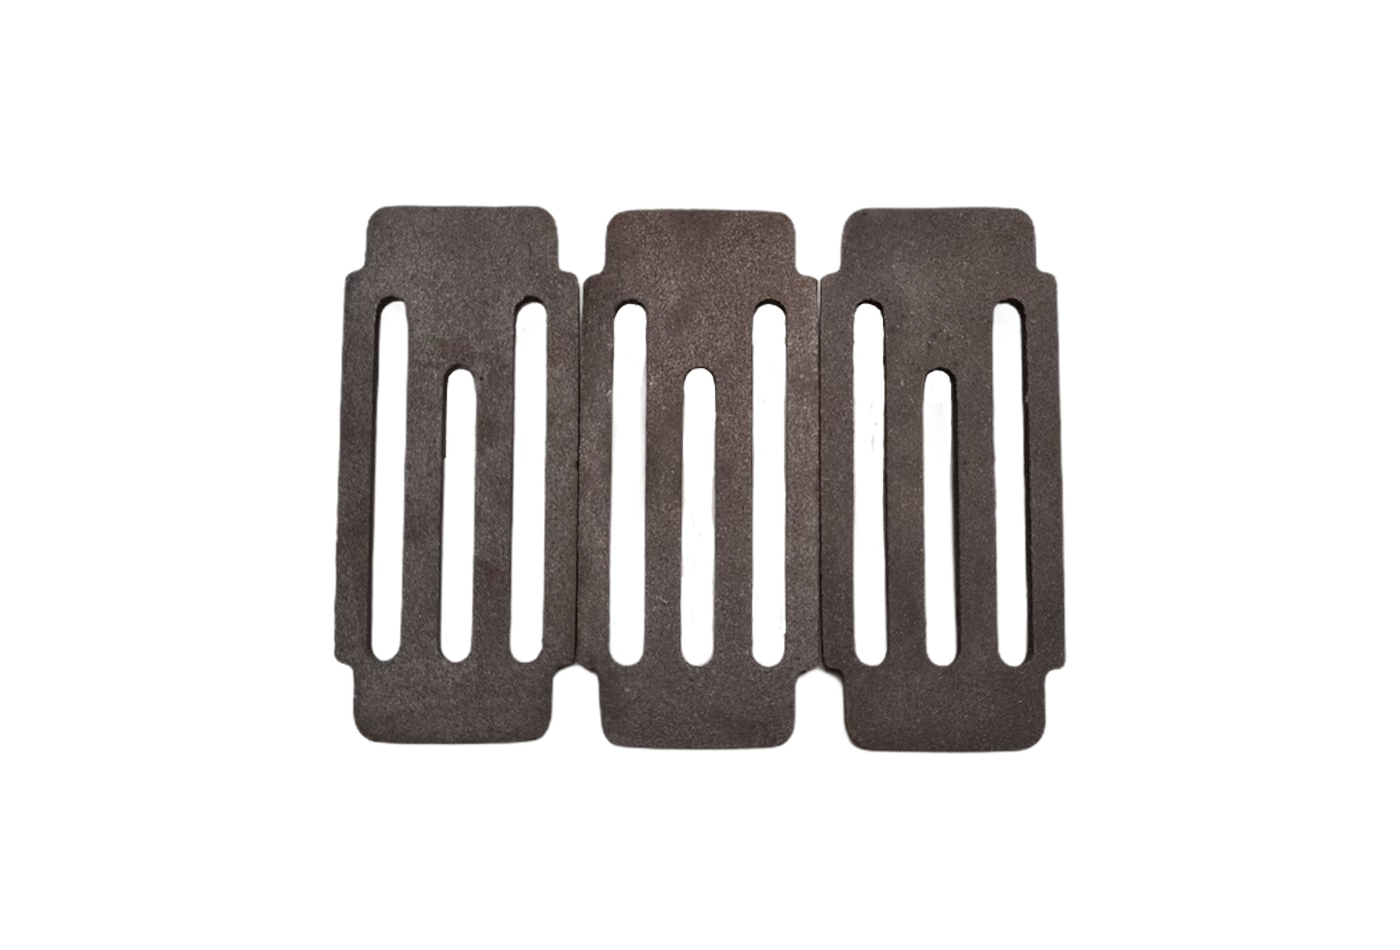 Charnwood C8 Grate Plate Set